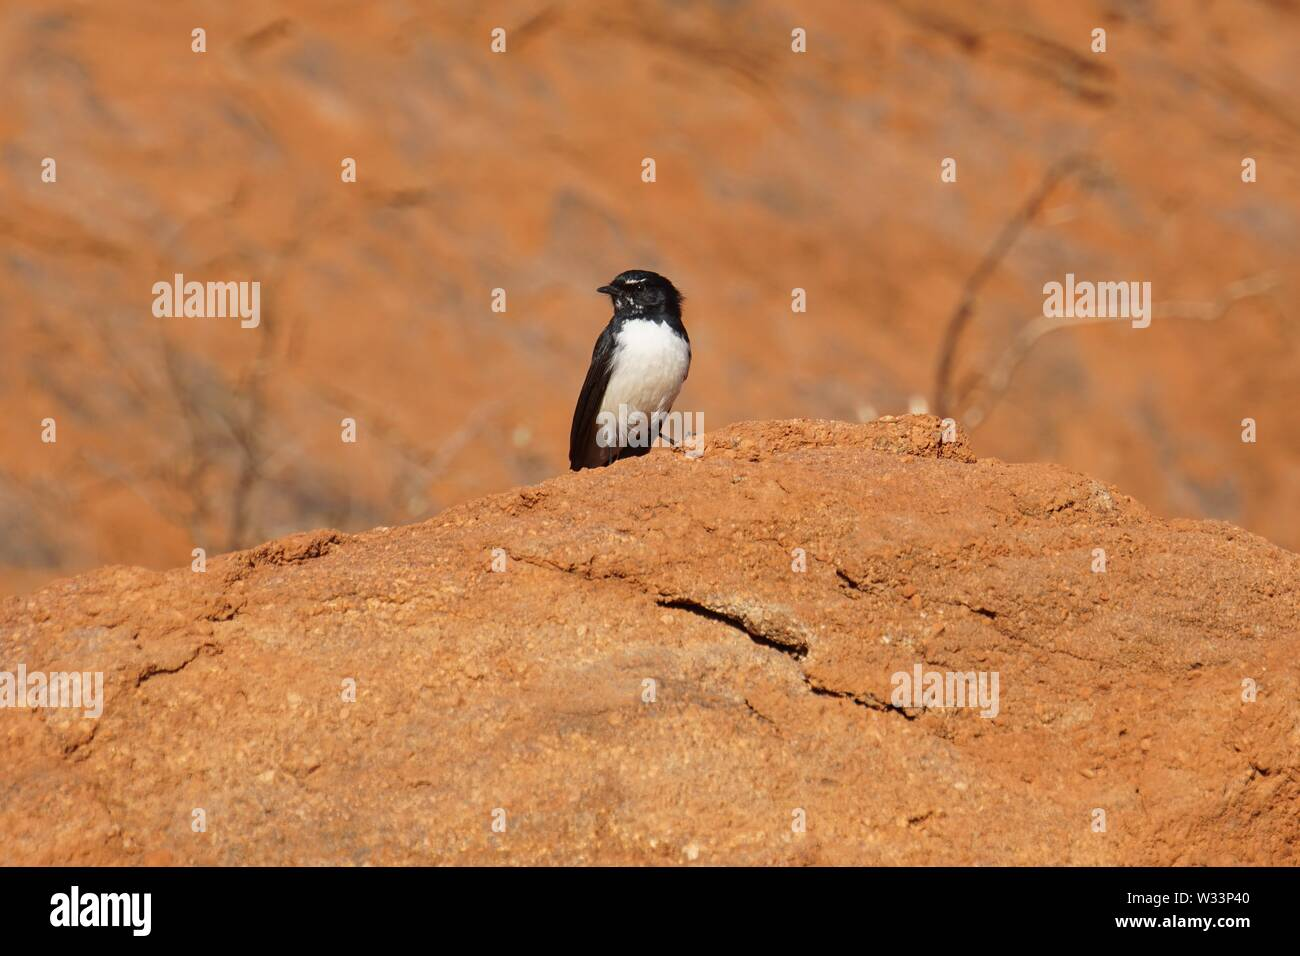 Bright-eyed, tiny black and white Willie Wagtail Bird perched on an Outcrop of Uluru - Stock Image